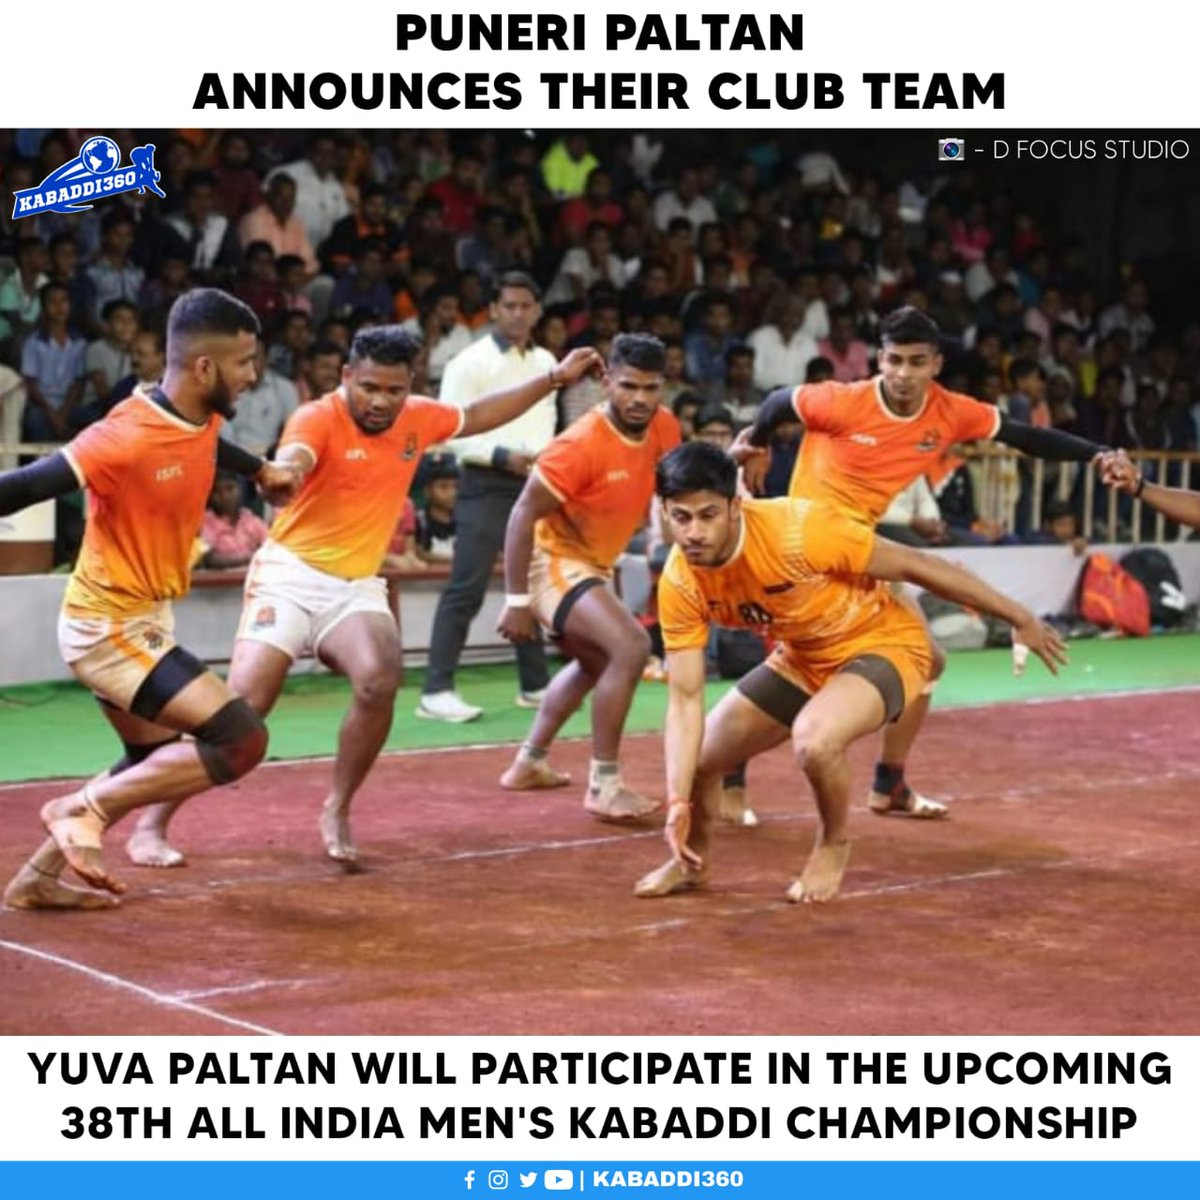 Catch the young brigade of Yuva Paltan in action as the tournament will be shown live on D Focus Sports YouTube Channel! 😍  #YuvaPaltan #38thAllIndiaMenKabaddiChampionship #Kabaddi360 #Kabaddi